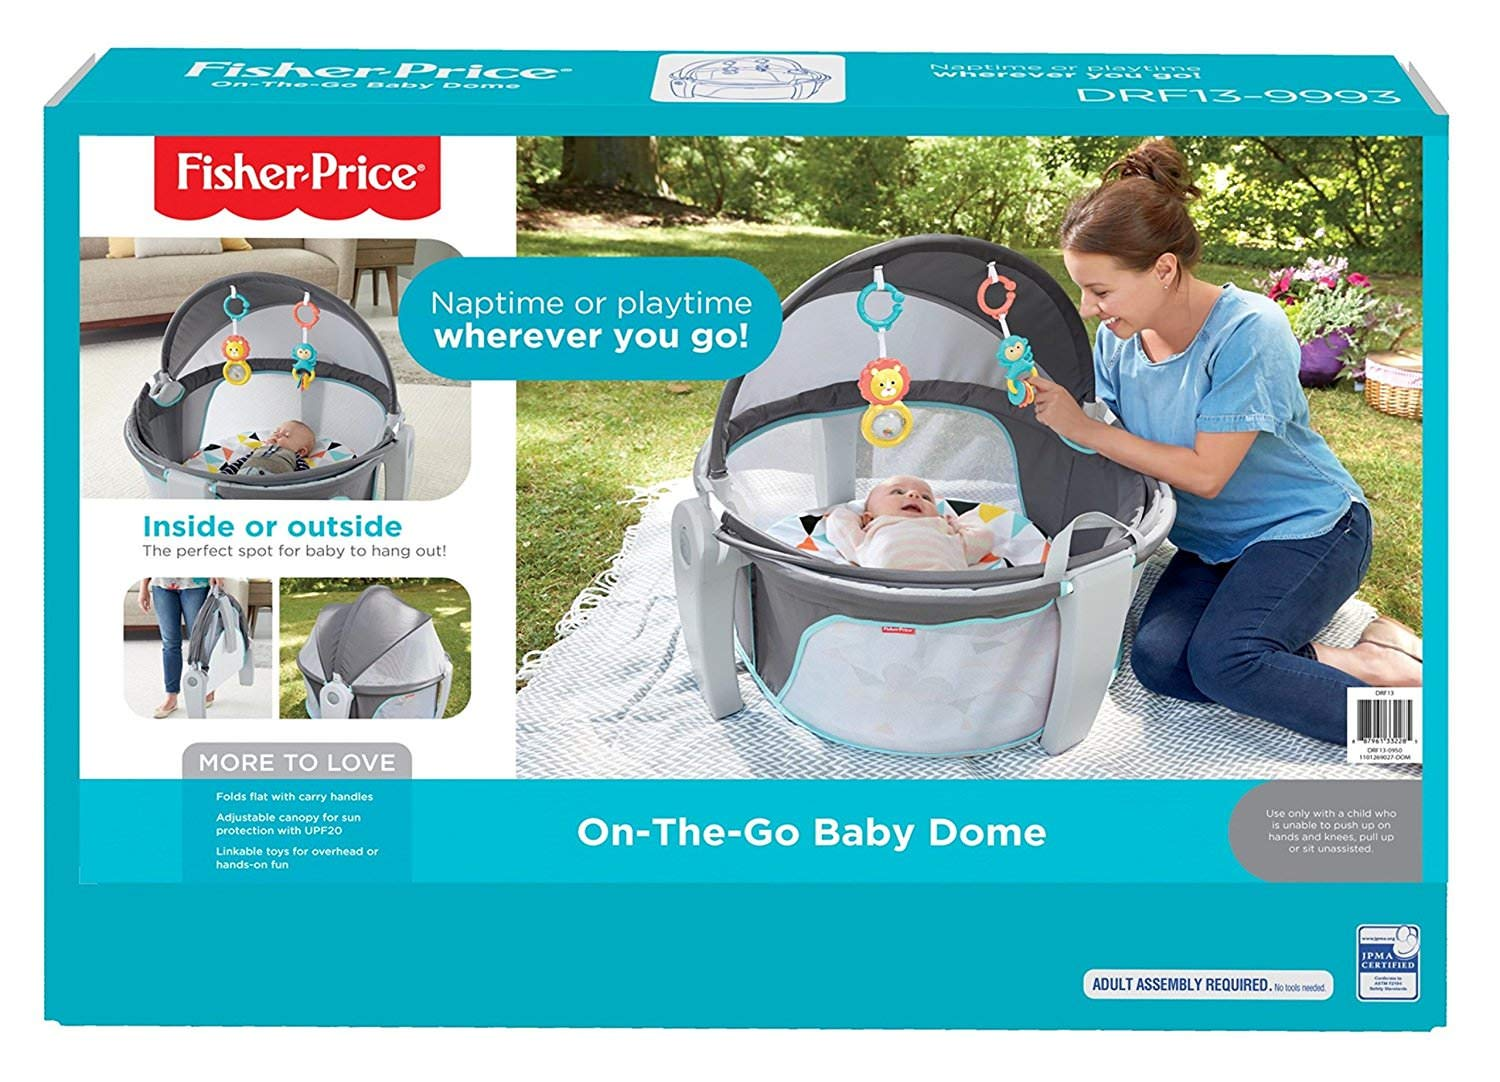 Amazon.com: Fisher-Price On-the-Go Baby Dome, 2 Pack: Kitchen & Dining